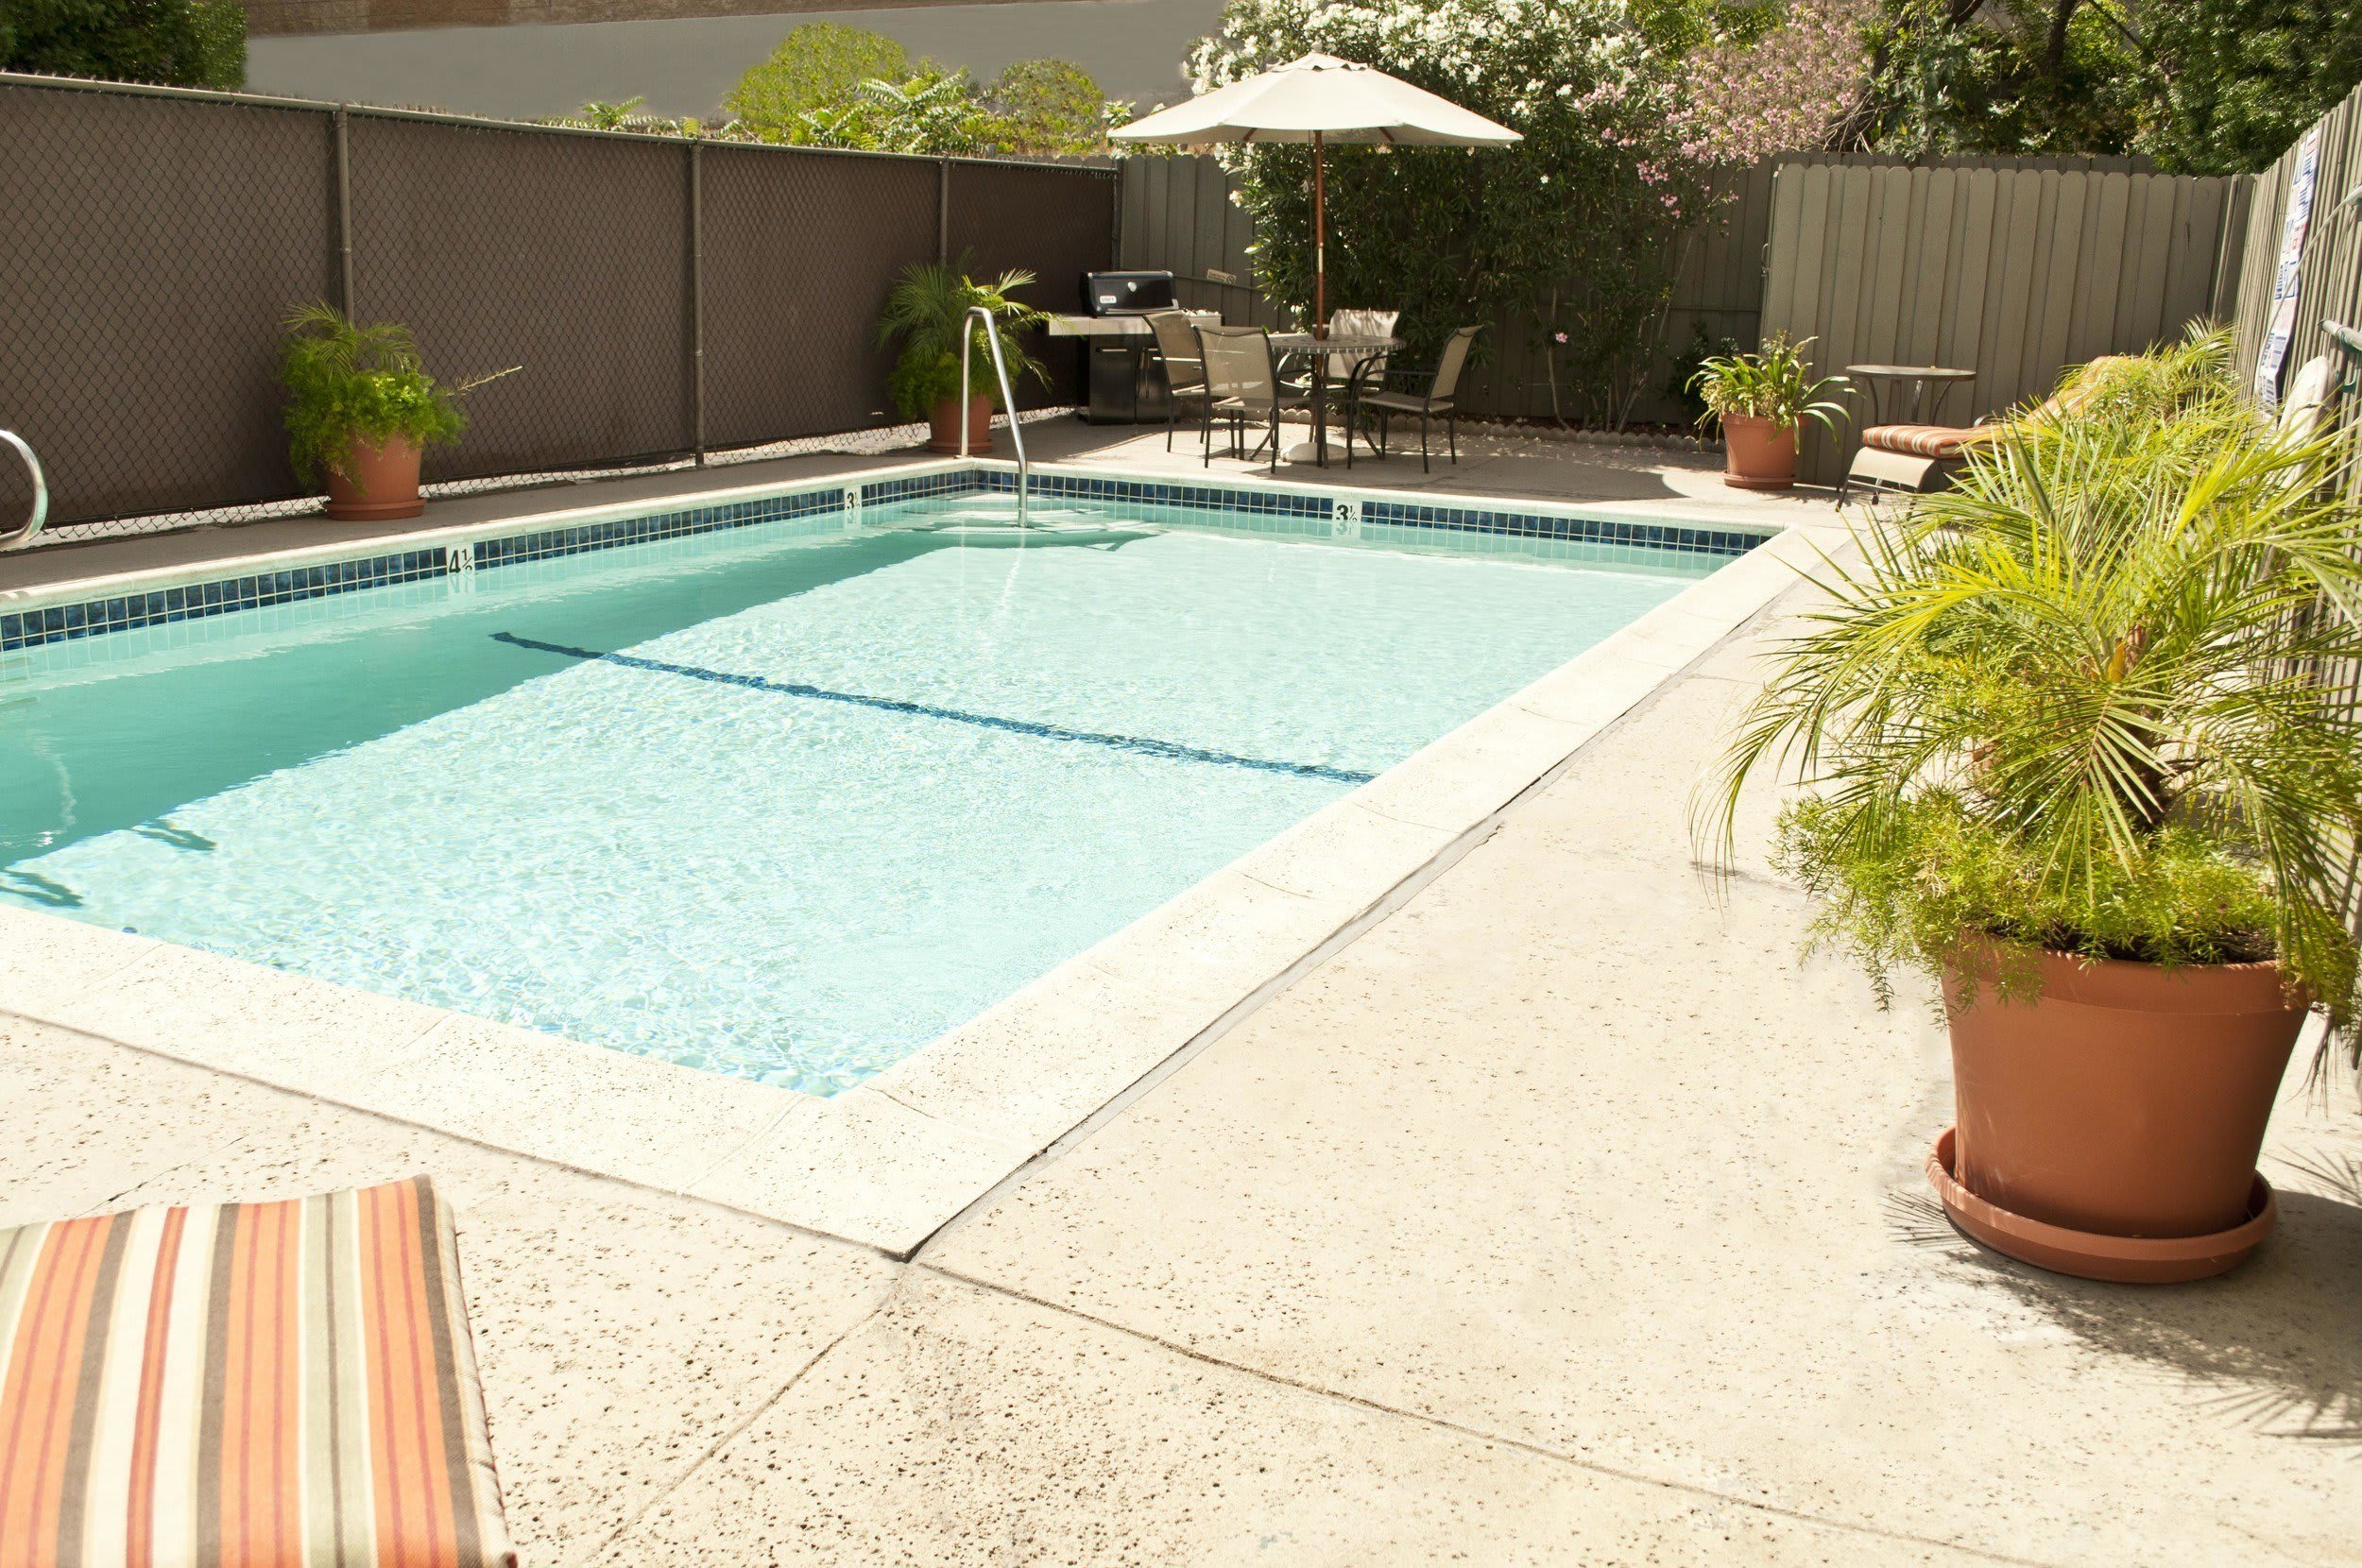 Outdoor pool with table and chairs at The Newporter in Tarzana, California